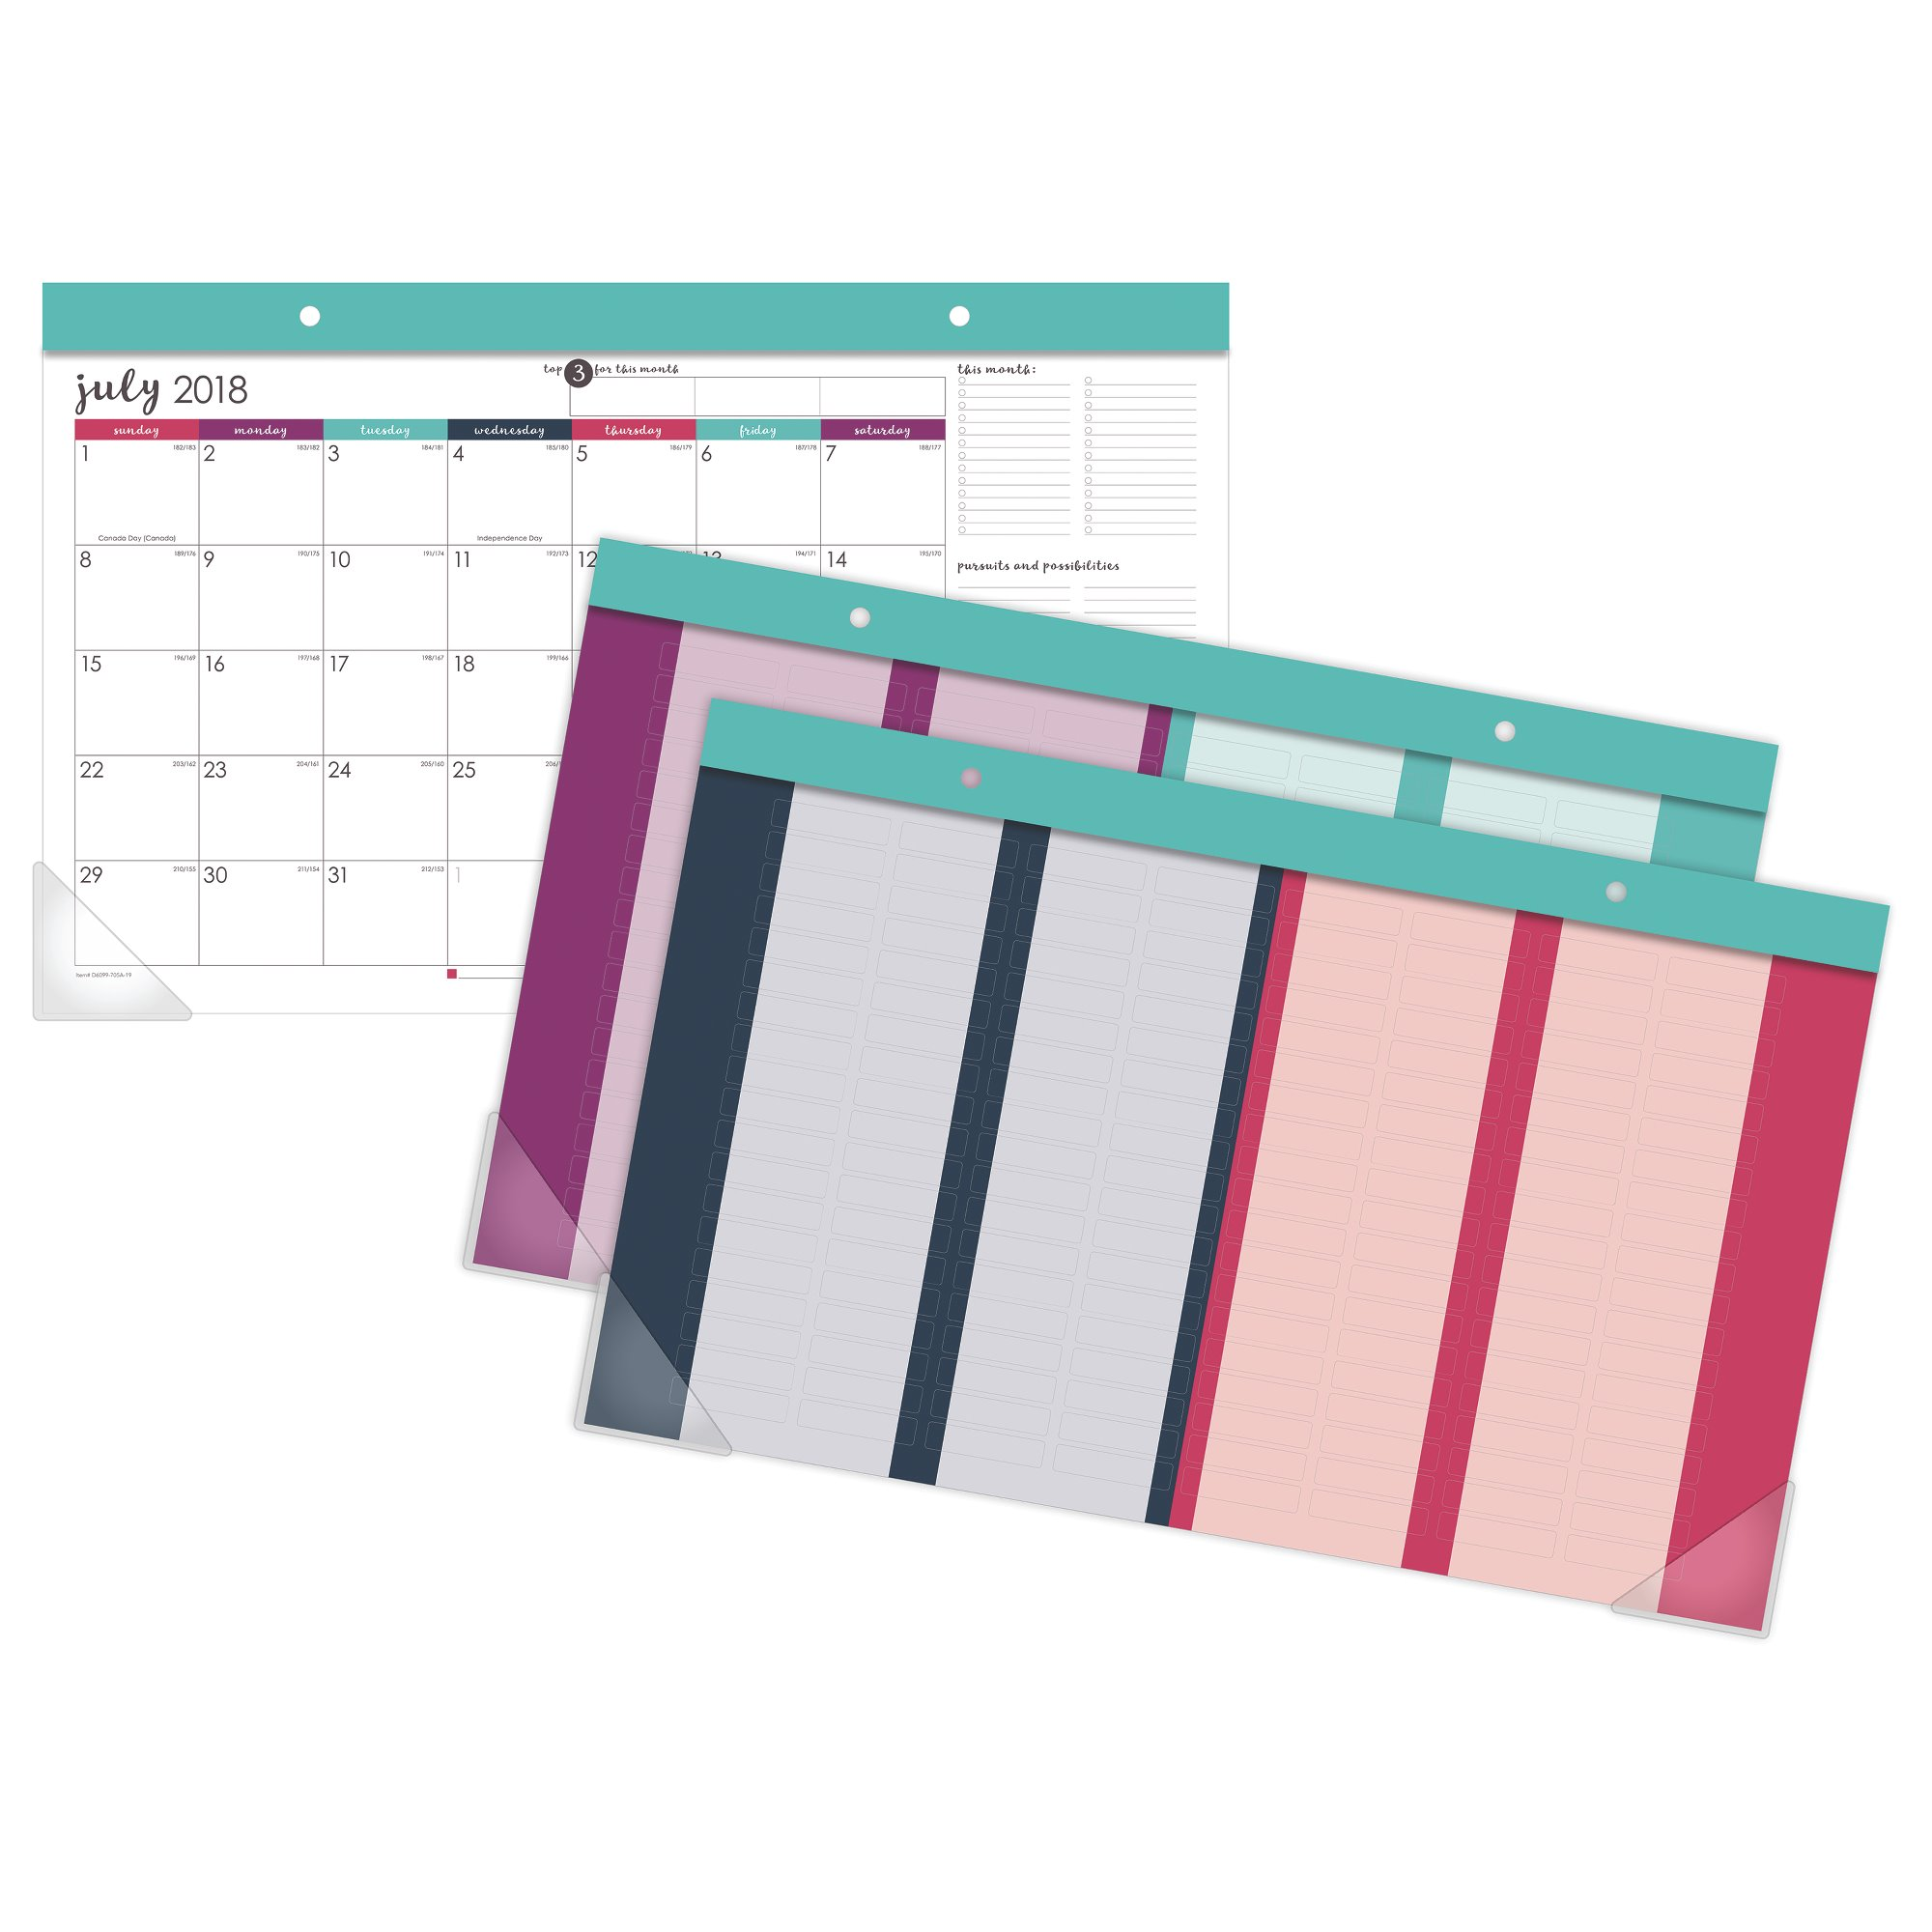 At-A-Glance Harmony Compact Desk Pad with Repositionable Stickers - Calendars